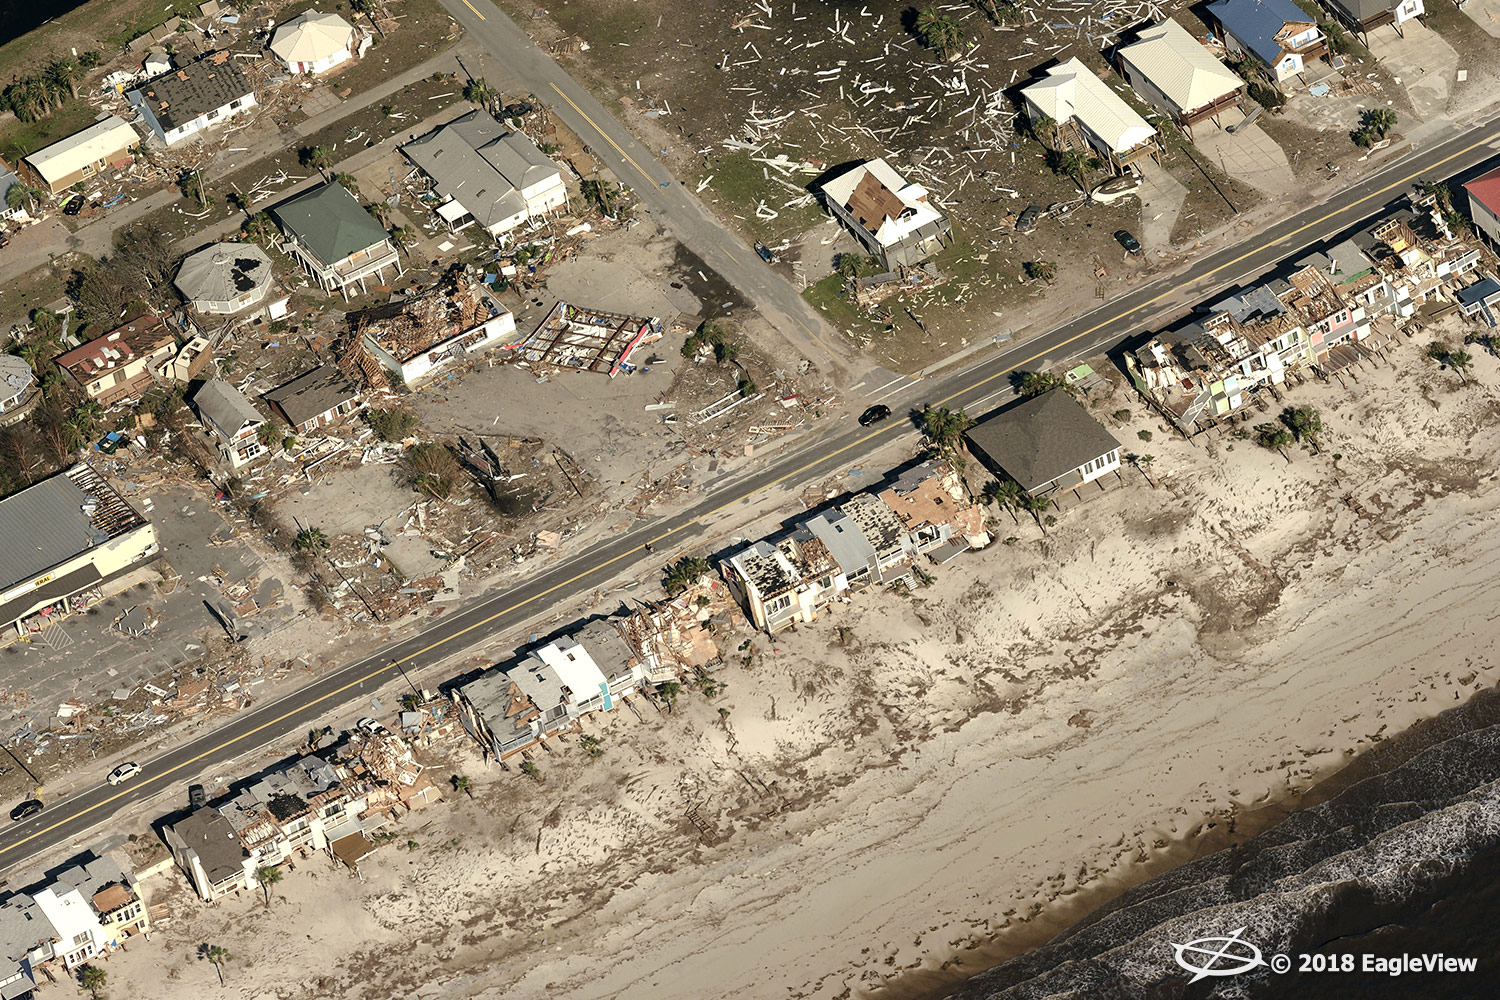 Eagle View - Hurricane Michael 1